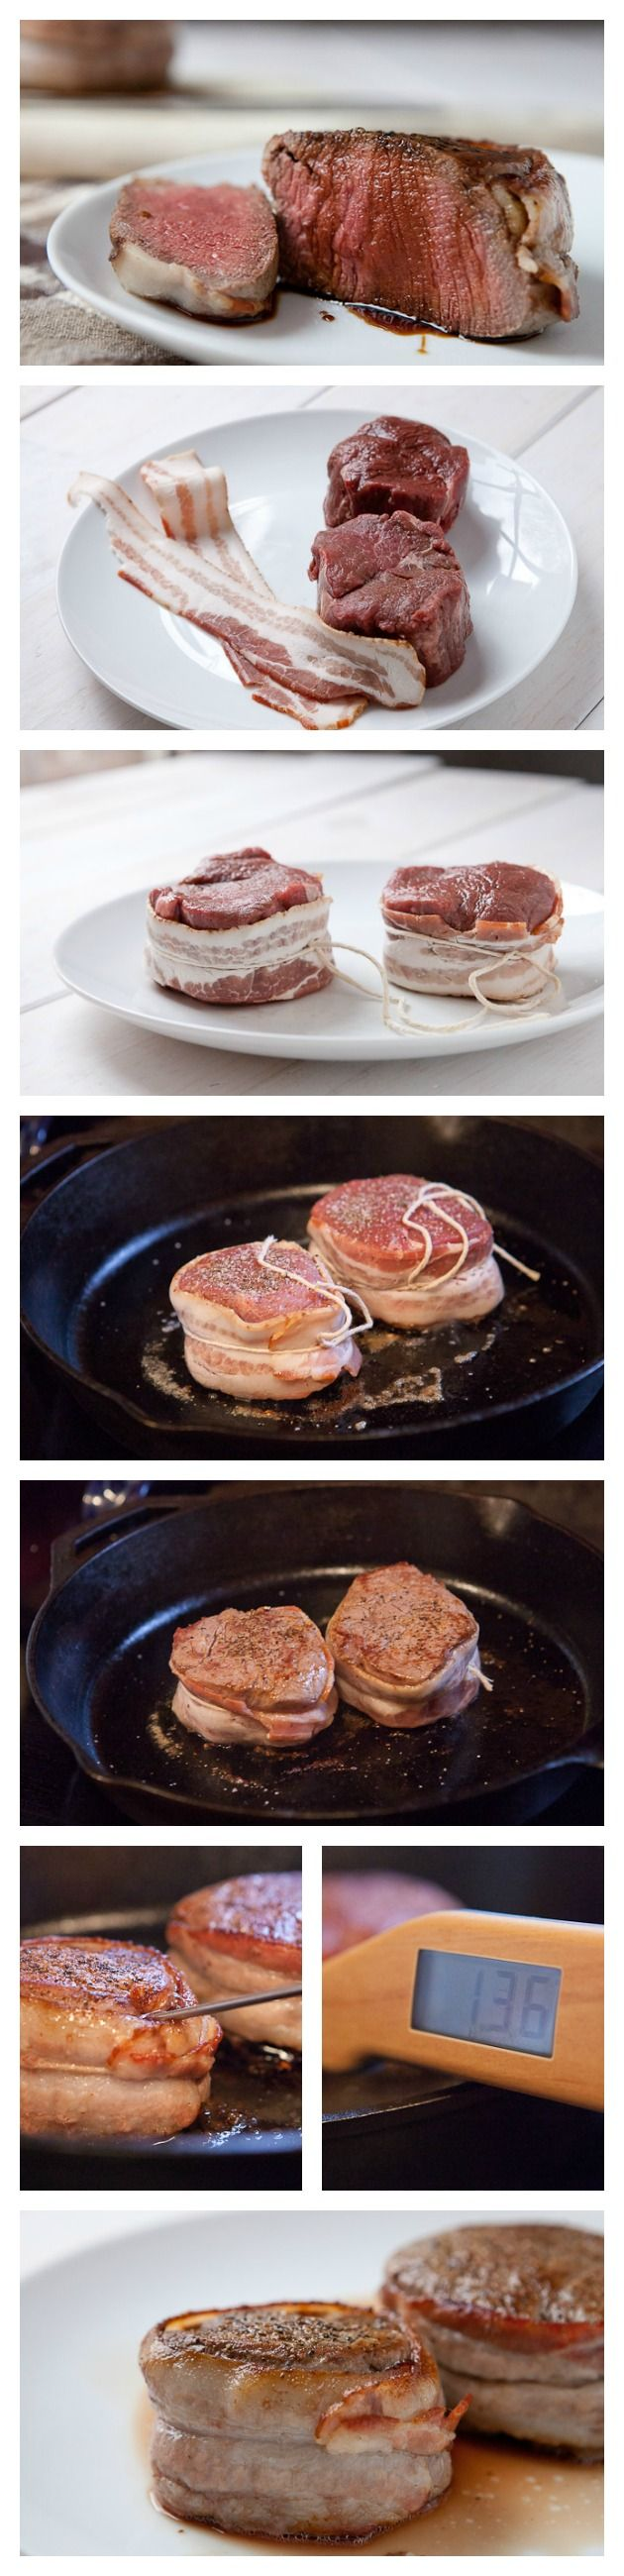 How To Cook A Baconwrapped Filet Mignon